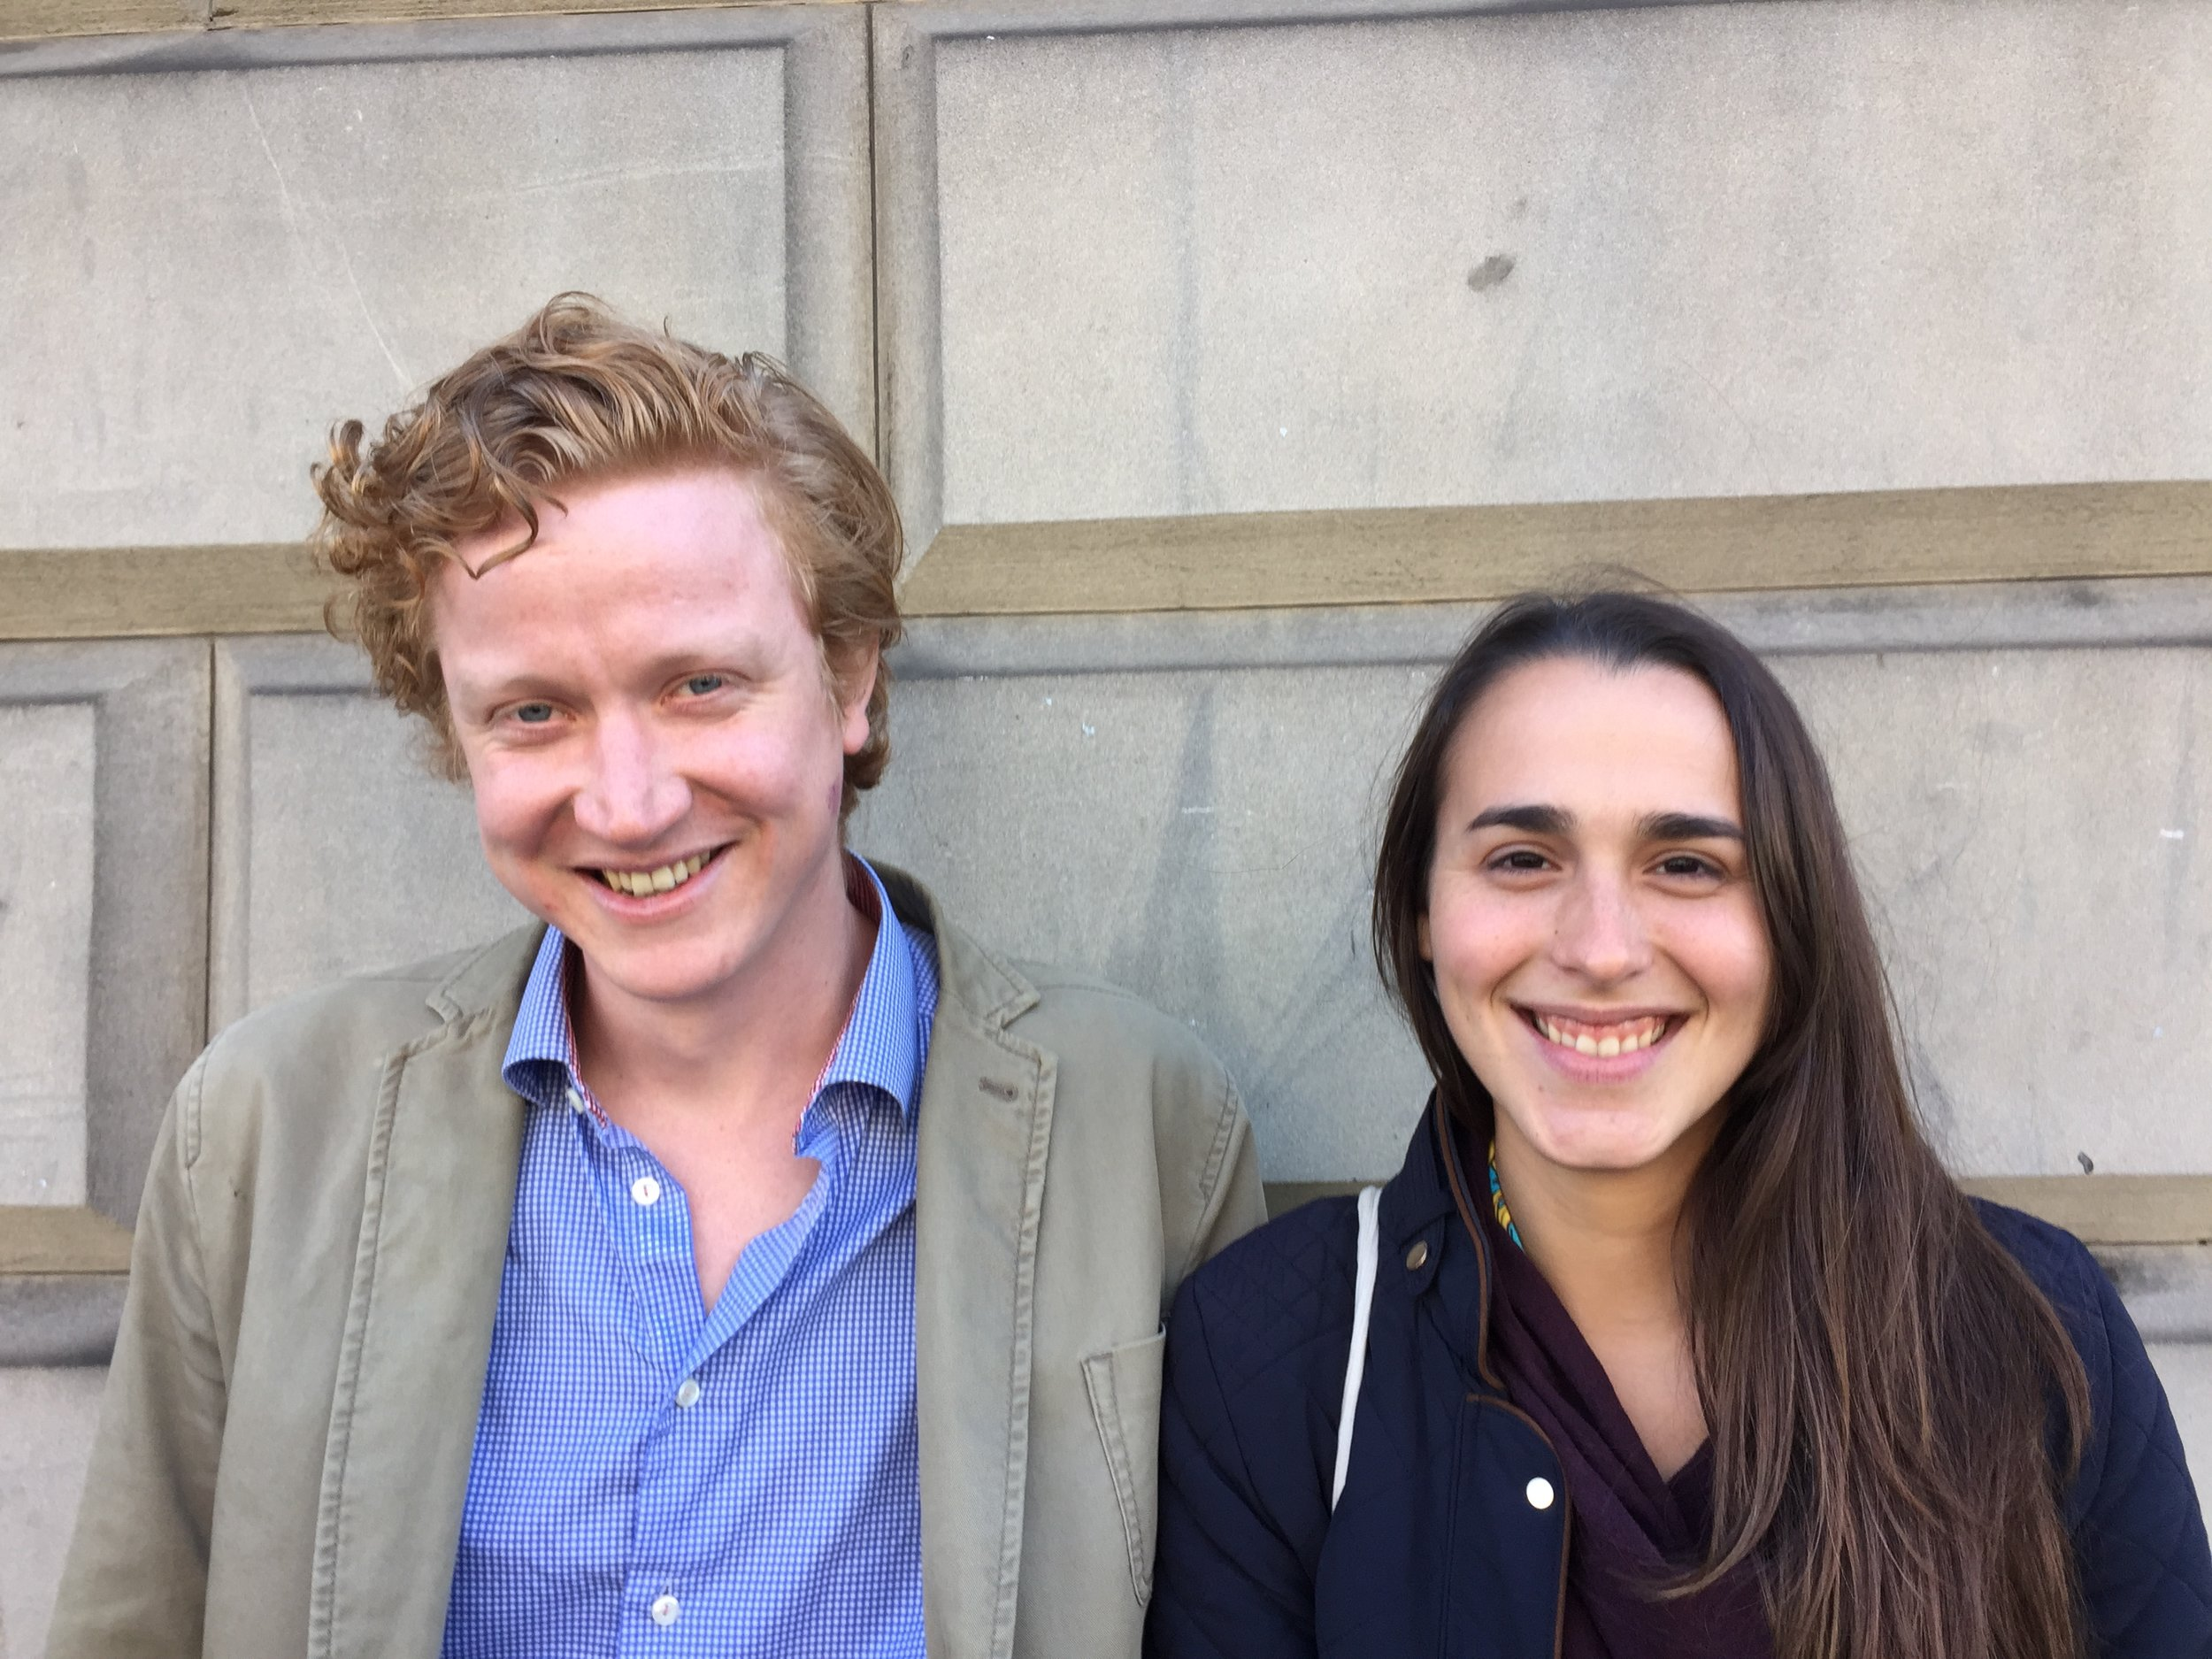 Edinburgh Food Studio founders Ben Reade and Sashana Souza Zanella in 2015.